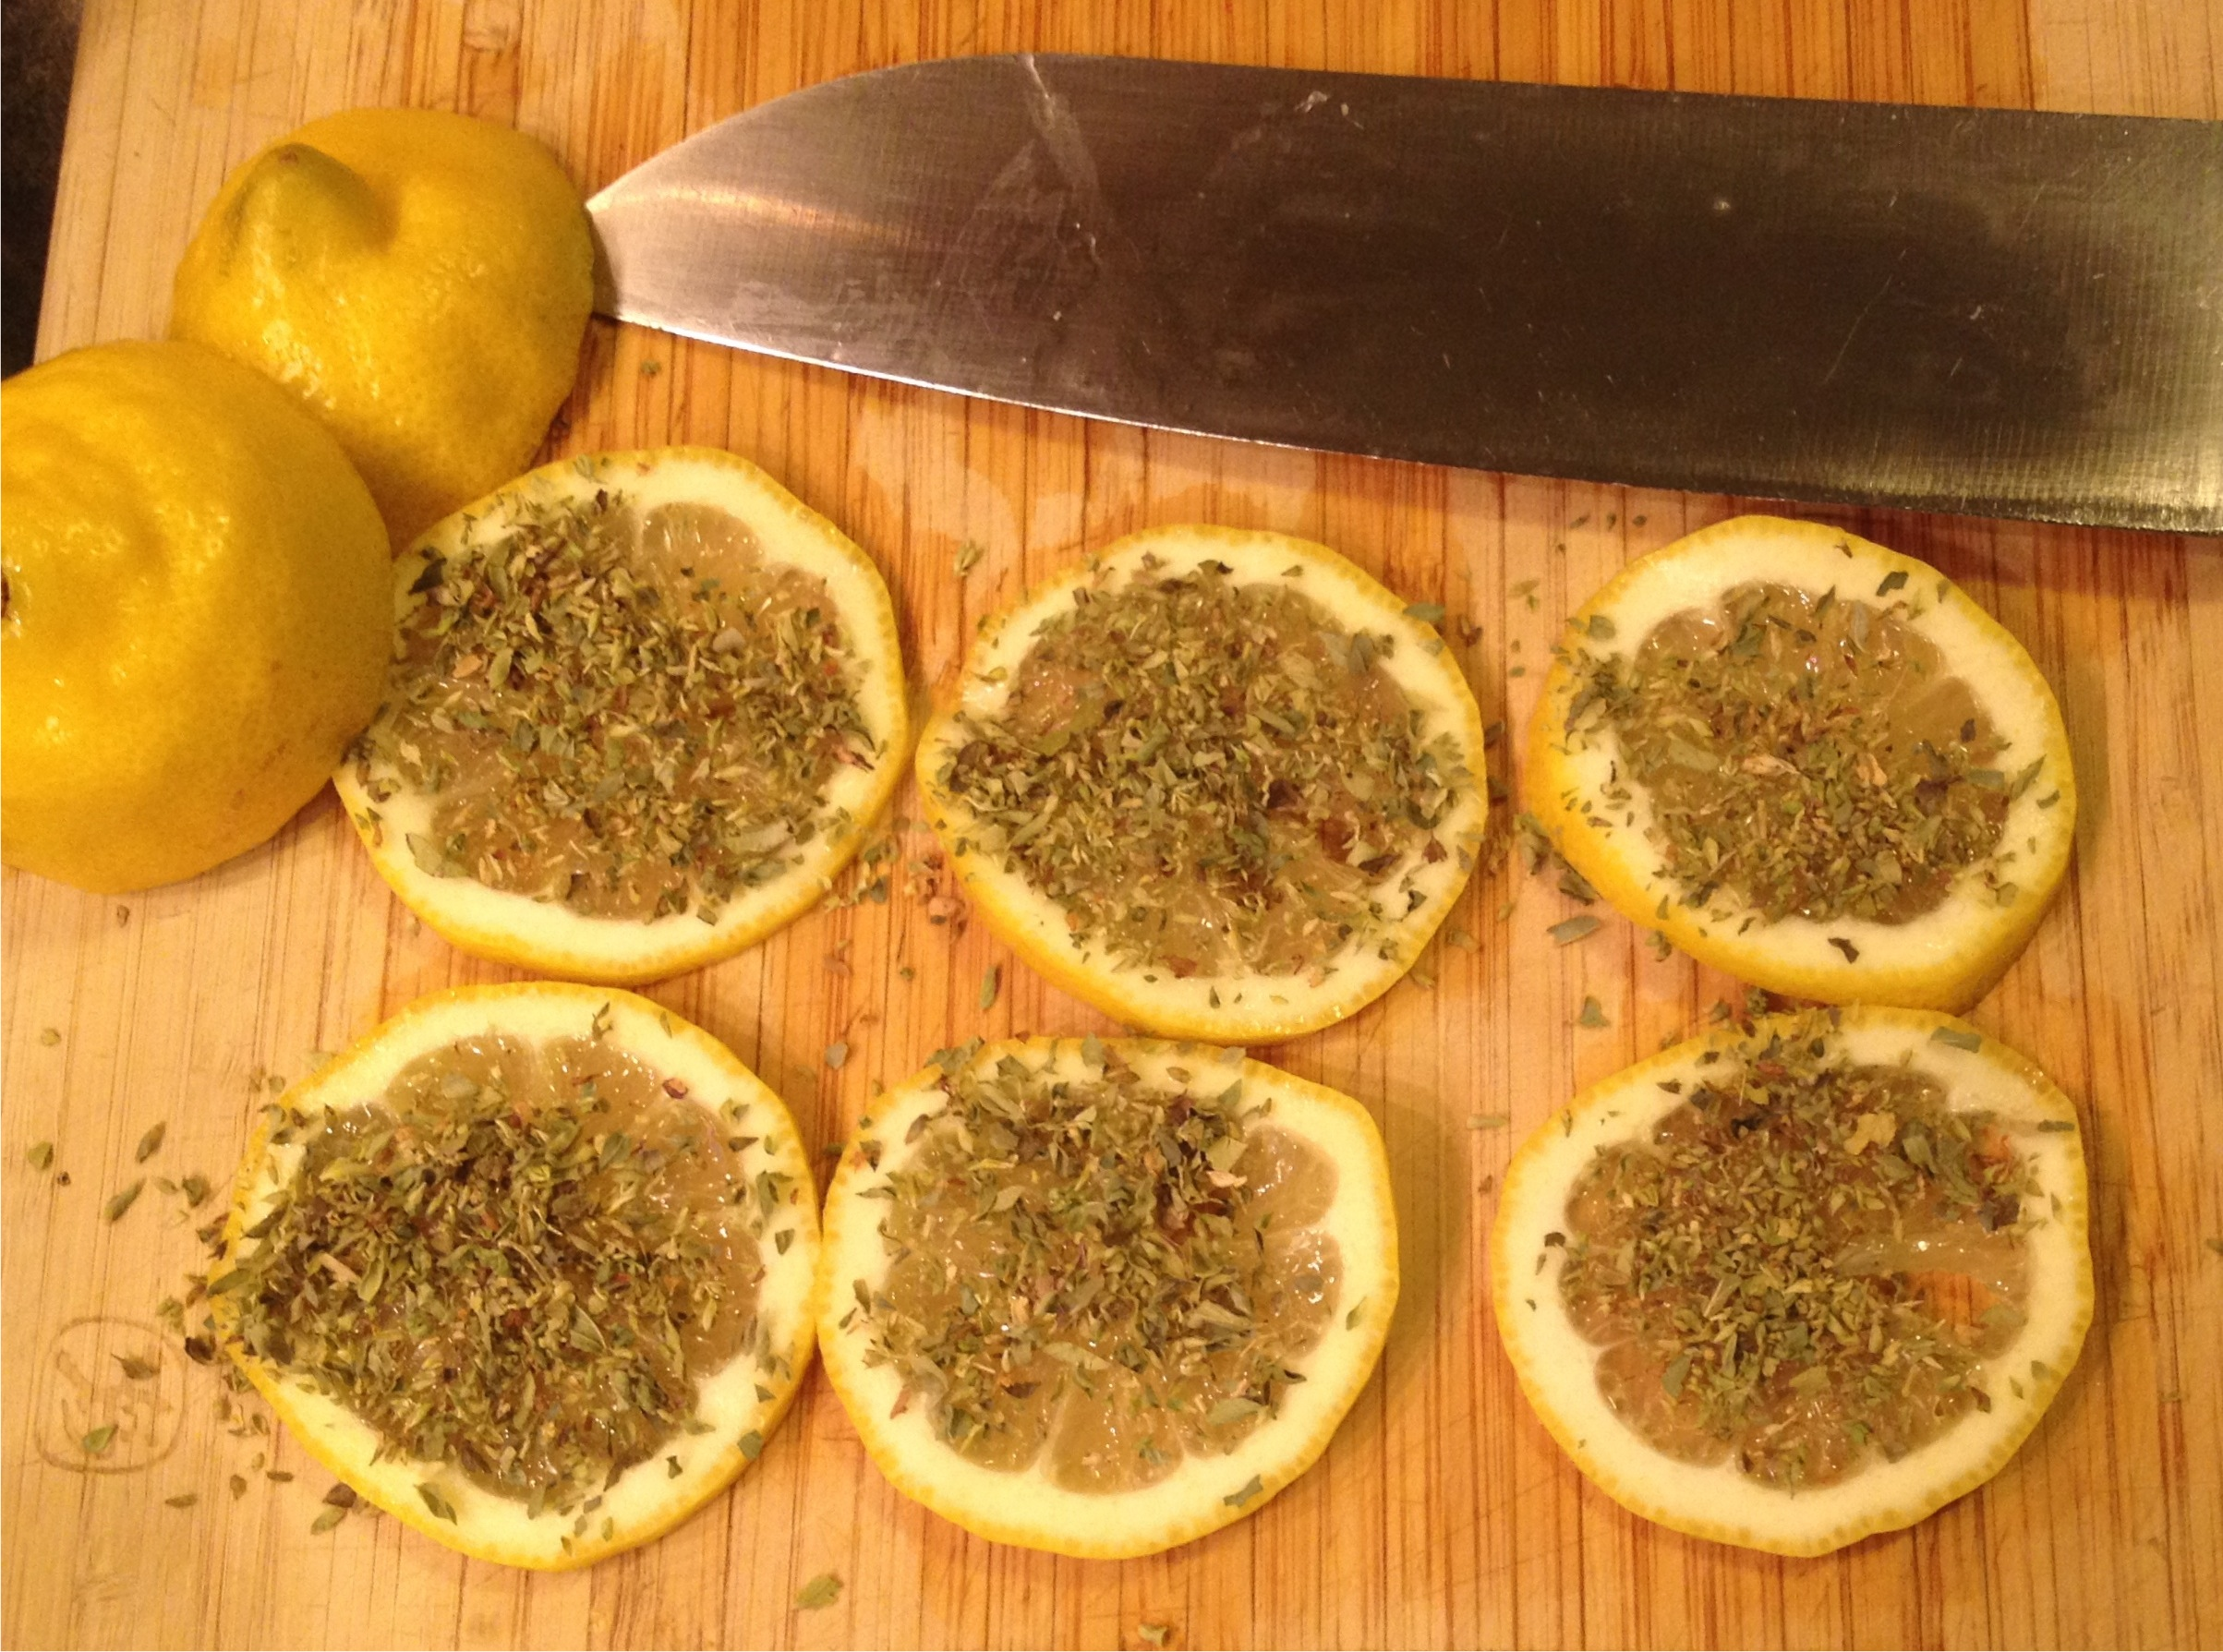 lemon slices covered with Greek oregano